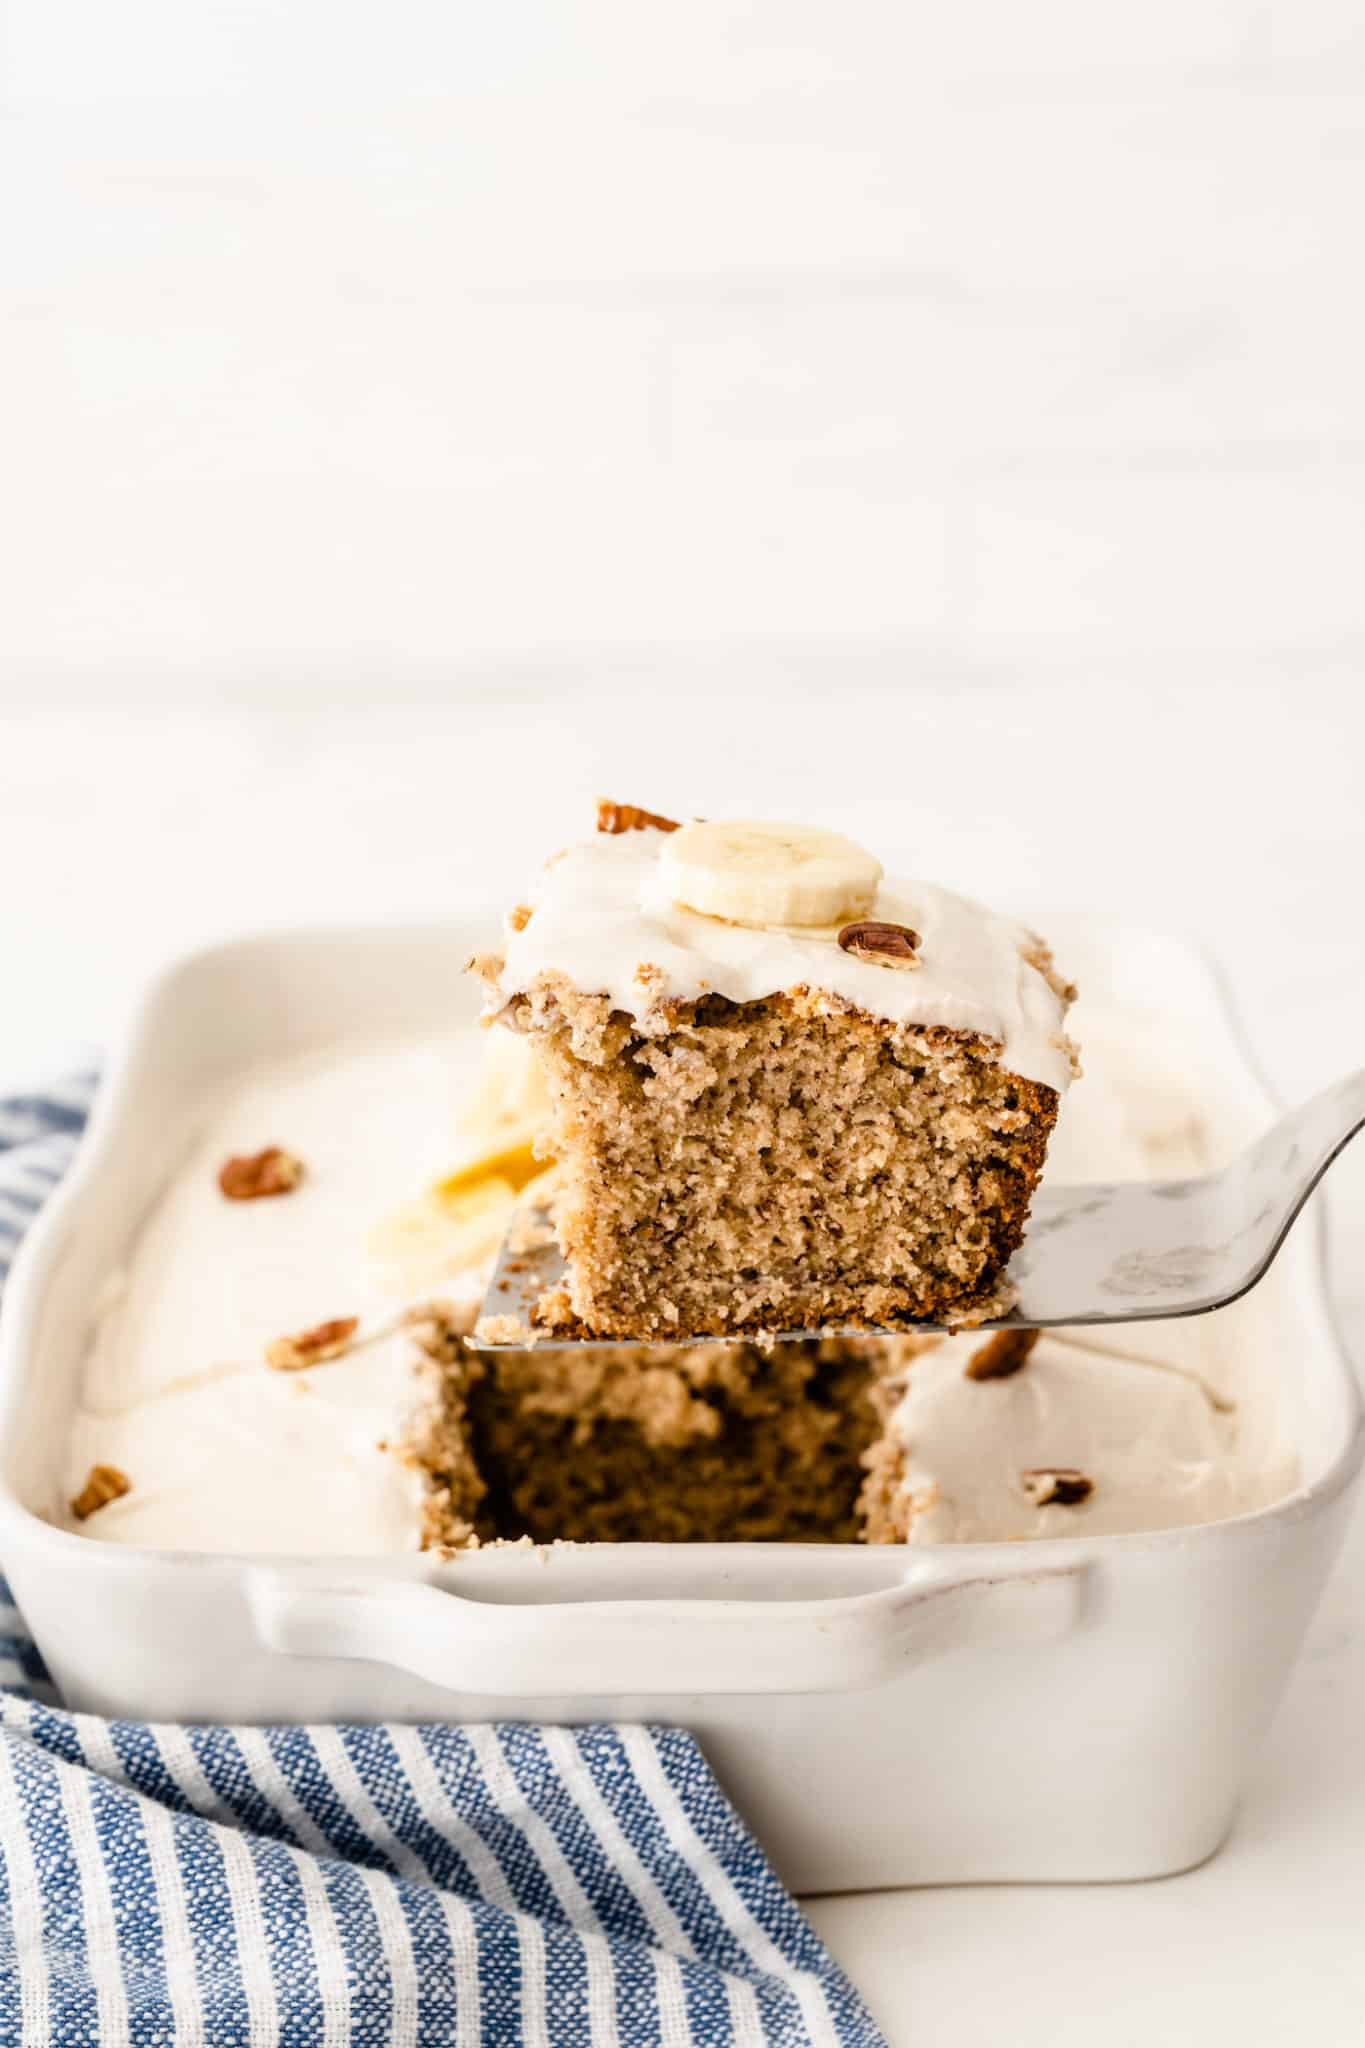 A slice of gluten-free banana cake with vanilla frosting